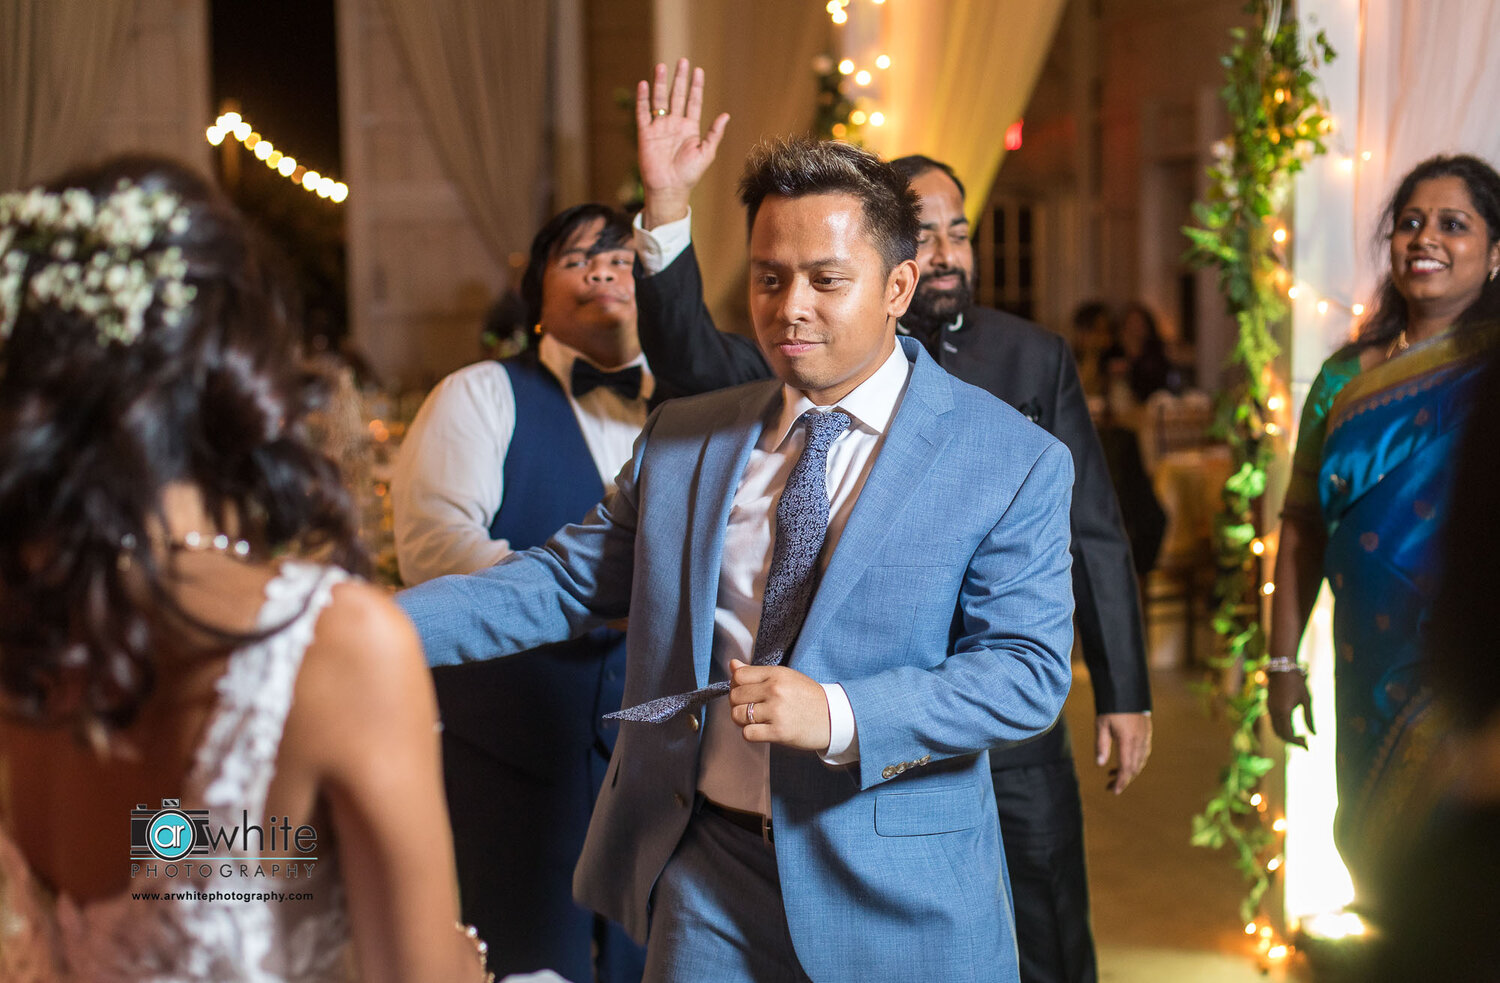 The groom dances with his wife at their wedding reception at Kylan Barn.